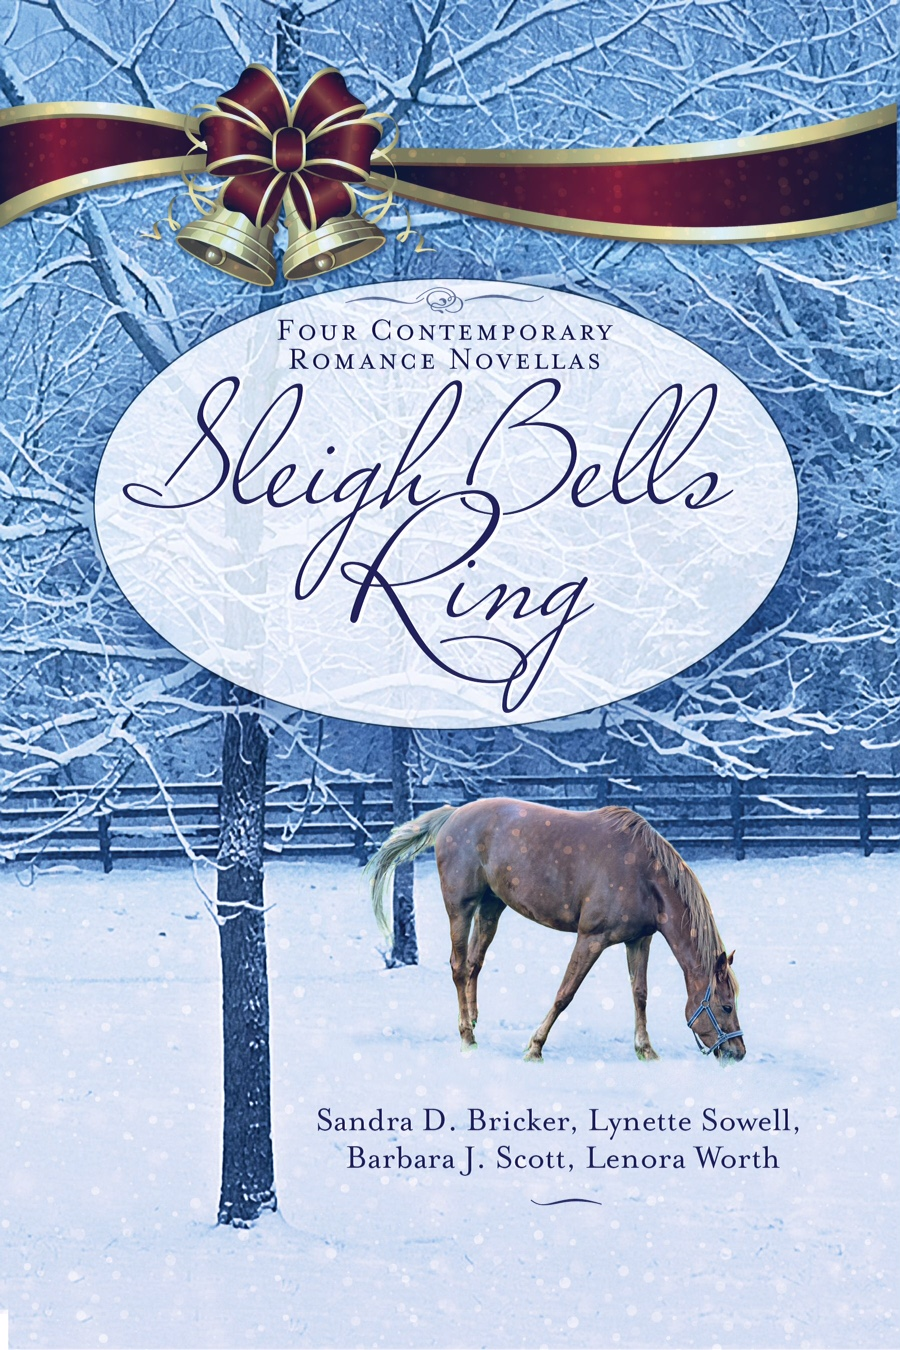 Blog Tour and Review: Sleigh Bells Ring #LoneStarLit